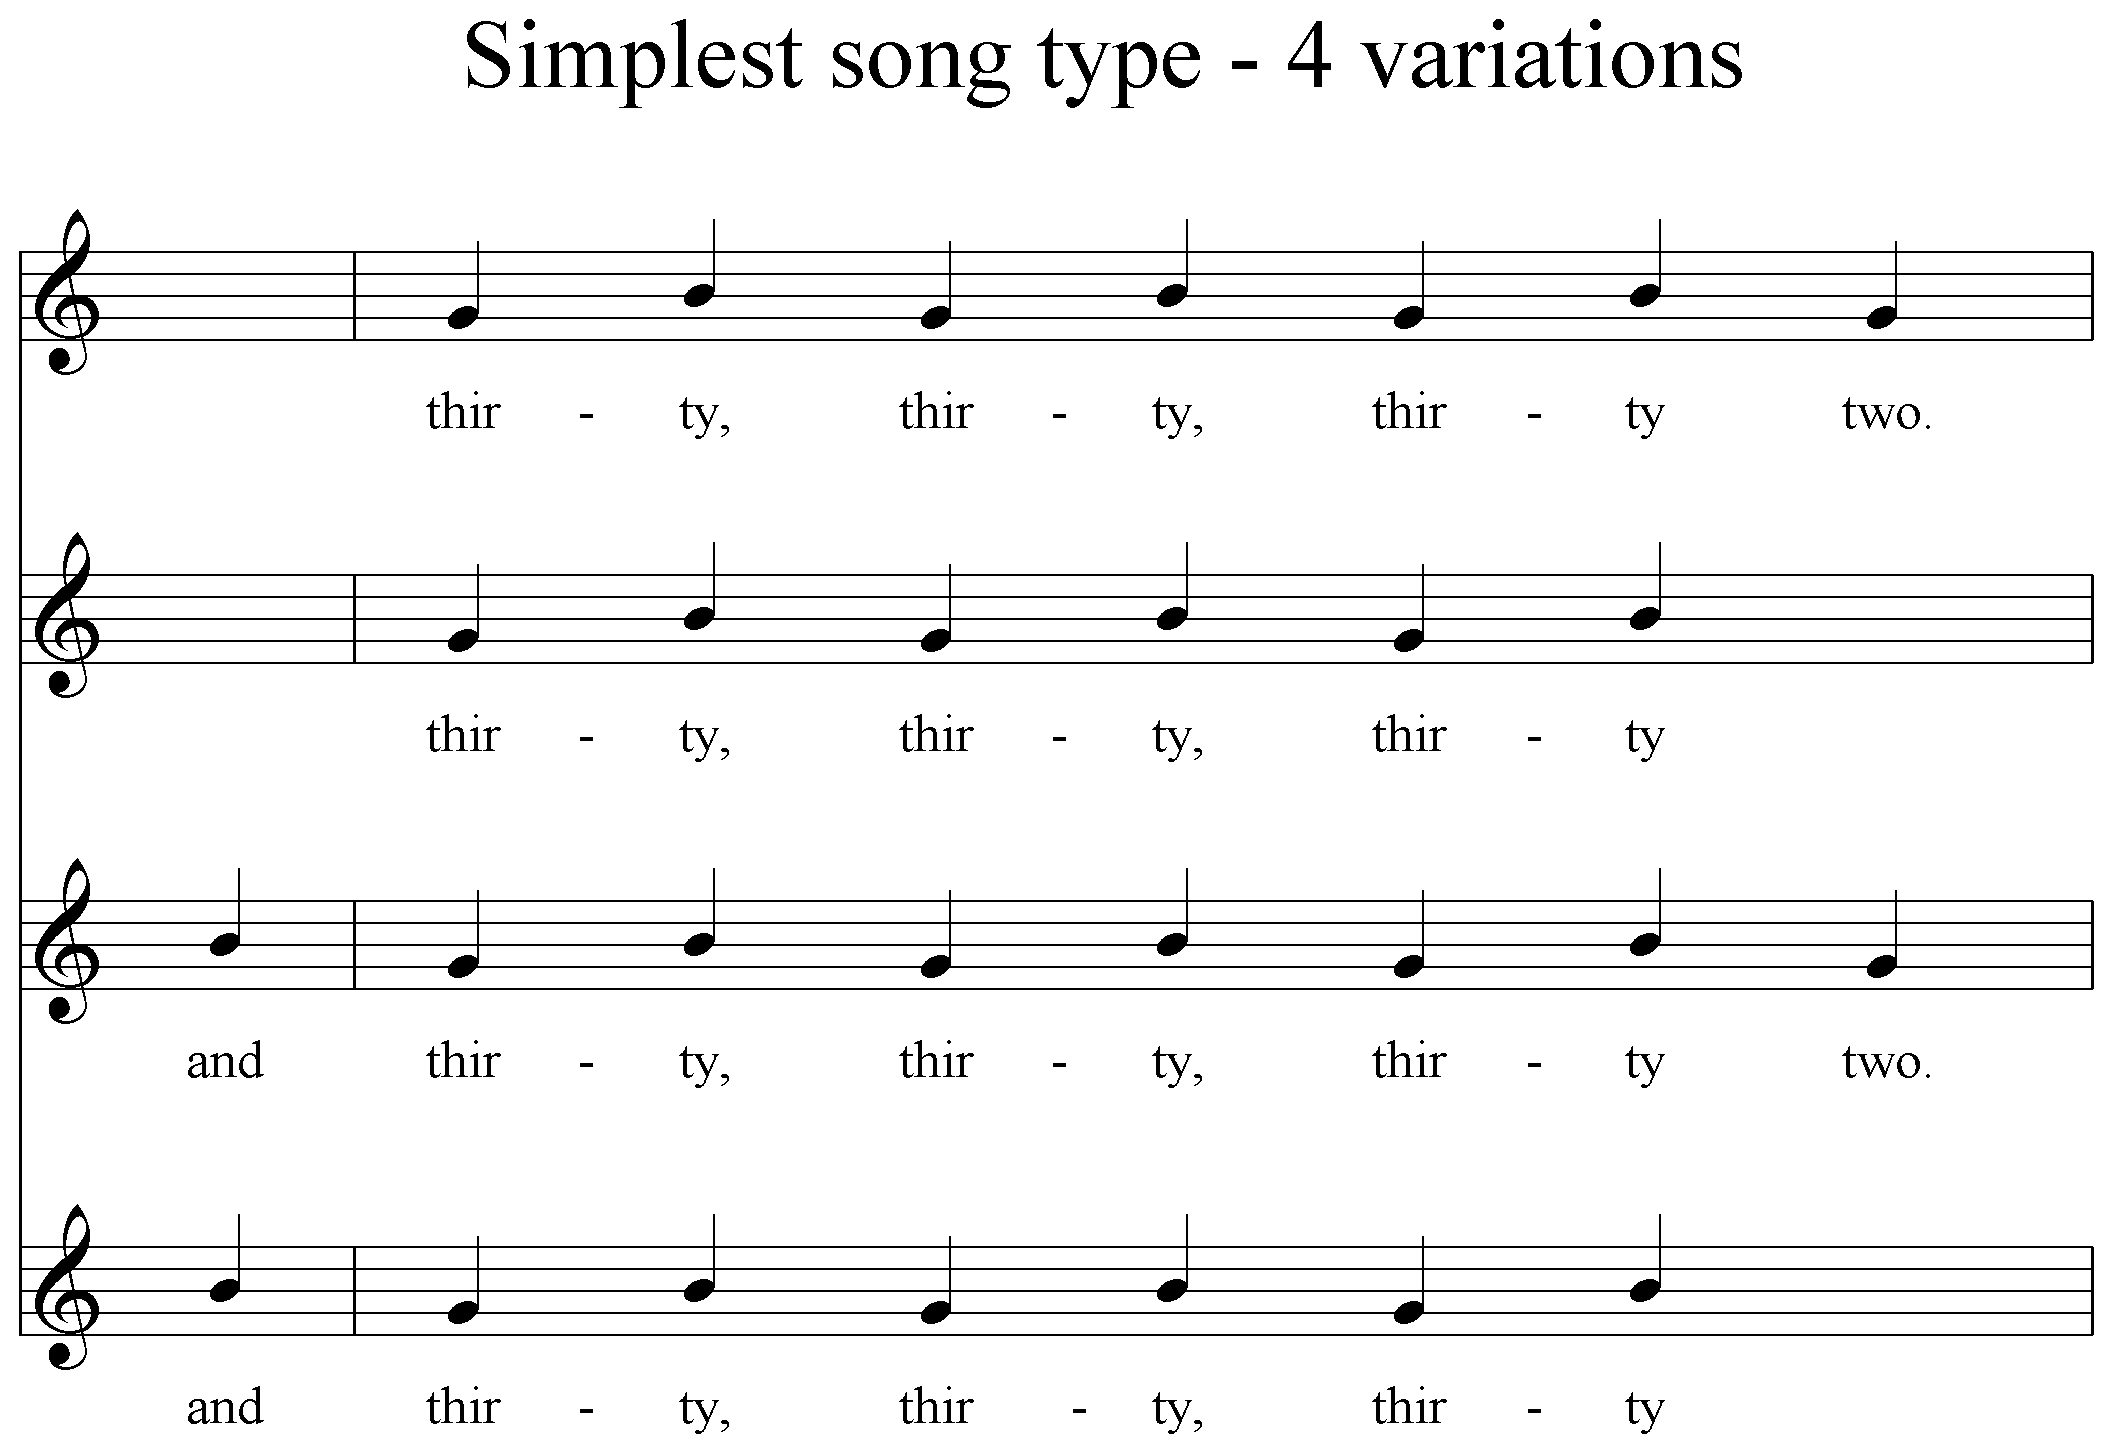 Figure 3 - notation of simplest song type